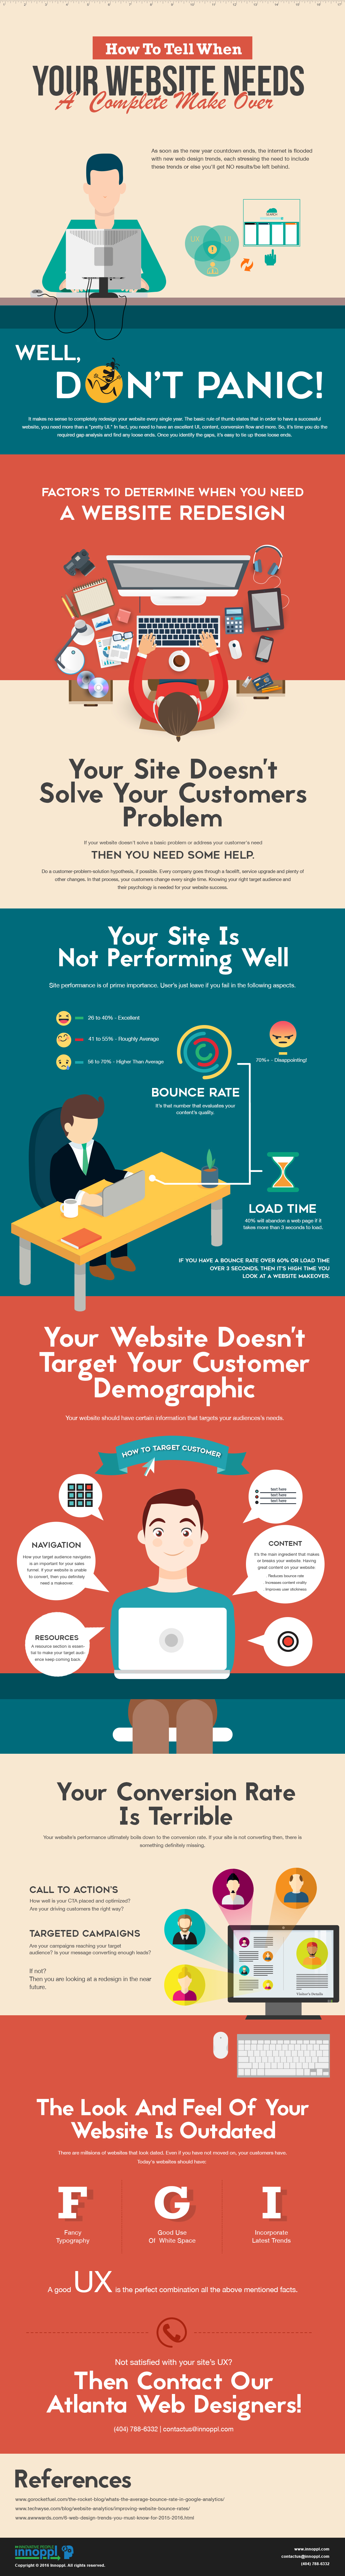 """""""Do I need a website redesign?"""" It's a common question every website owner's mind when their website doesn't perform up to their expectations. The fact is that the trends change every year. This infographic by Innoppl highlights on various key factors that denotes your site's success."""